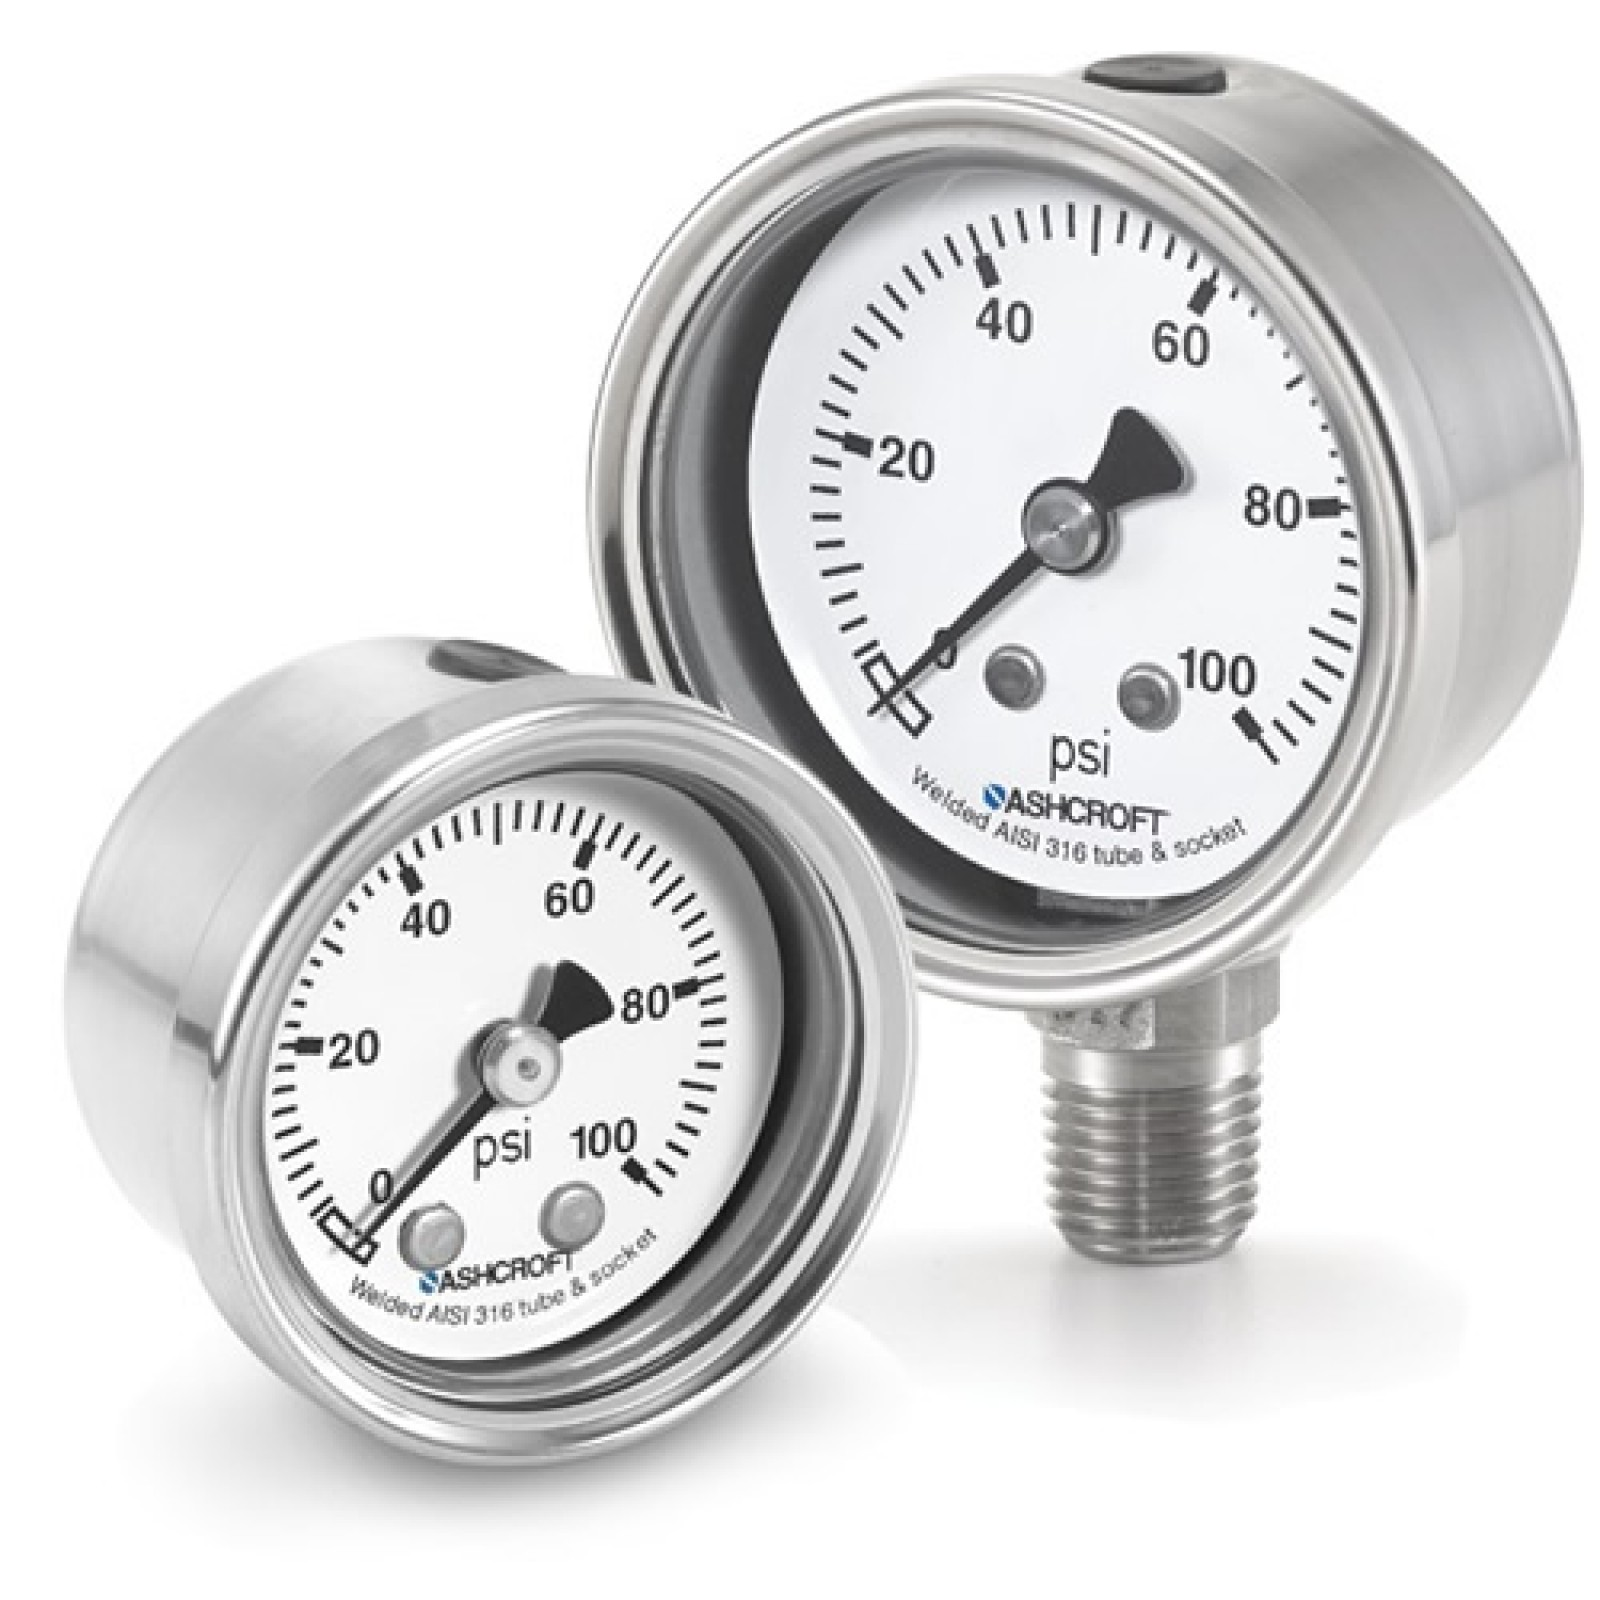 "63 1008S 02B XLL 30/0IMV/KP - Pressure Gauge, 63mm stainless 1/4"" NPT Back conn & Case, Plus Performance, 30/0""hg"